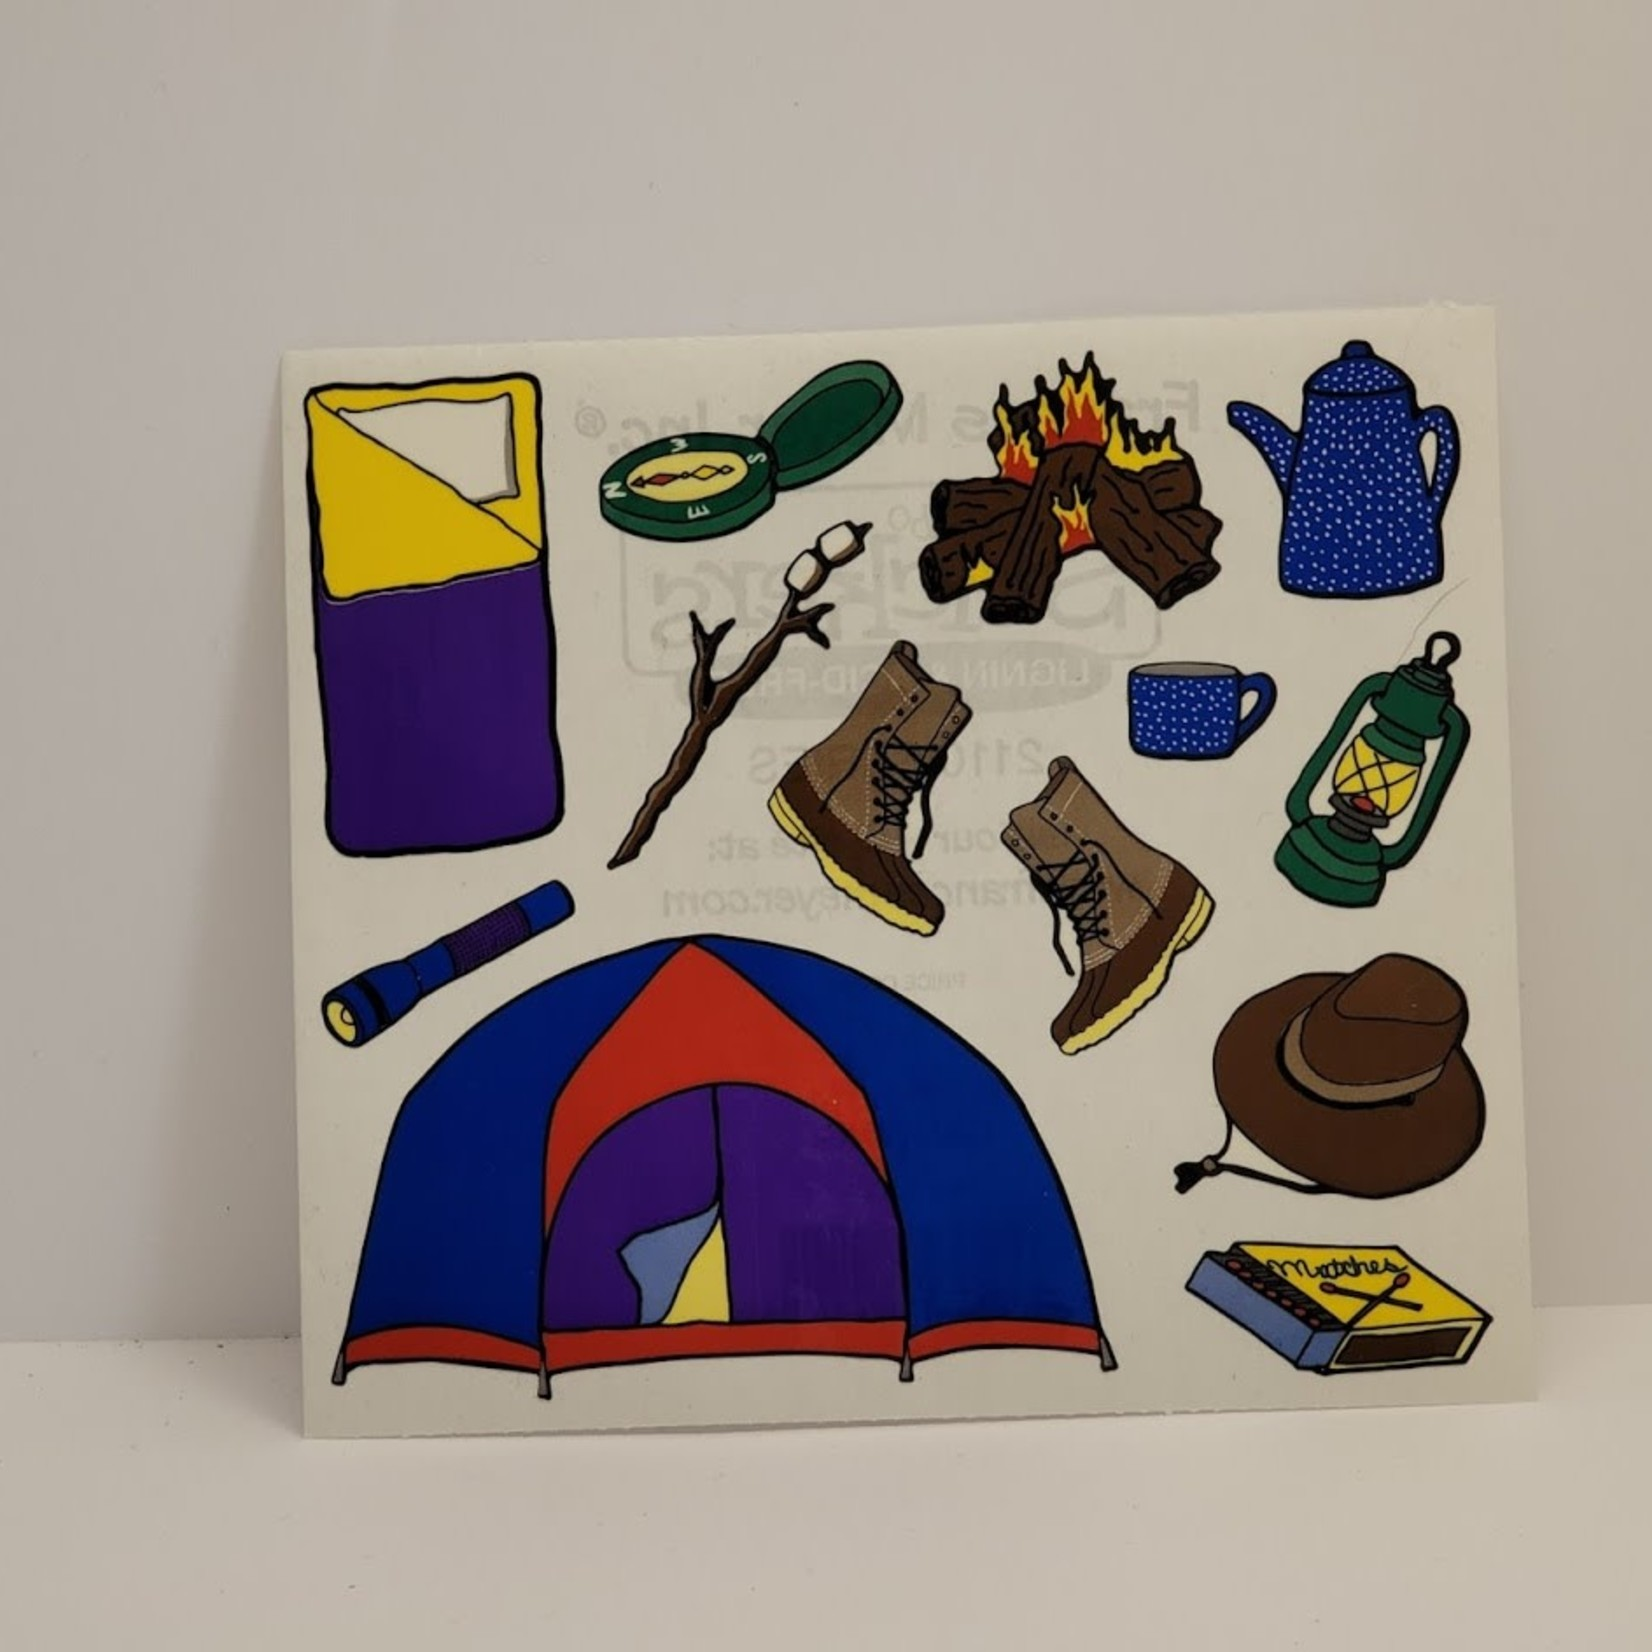 Stickers - Camping